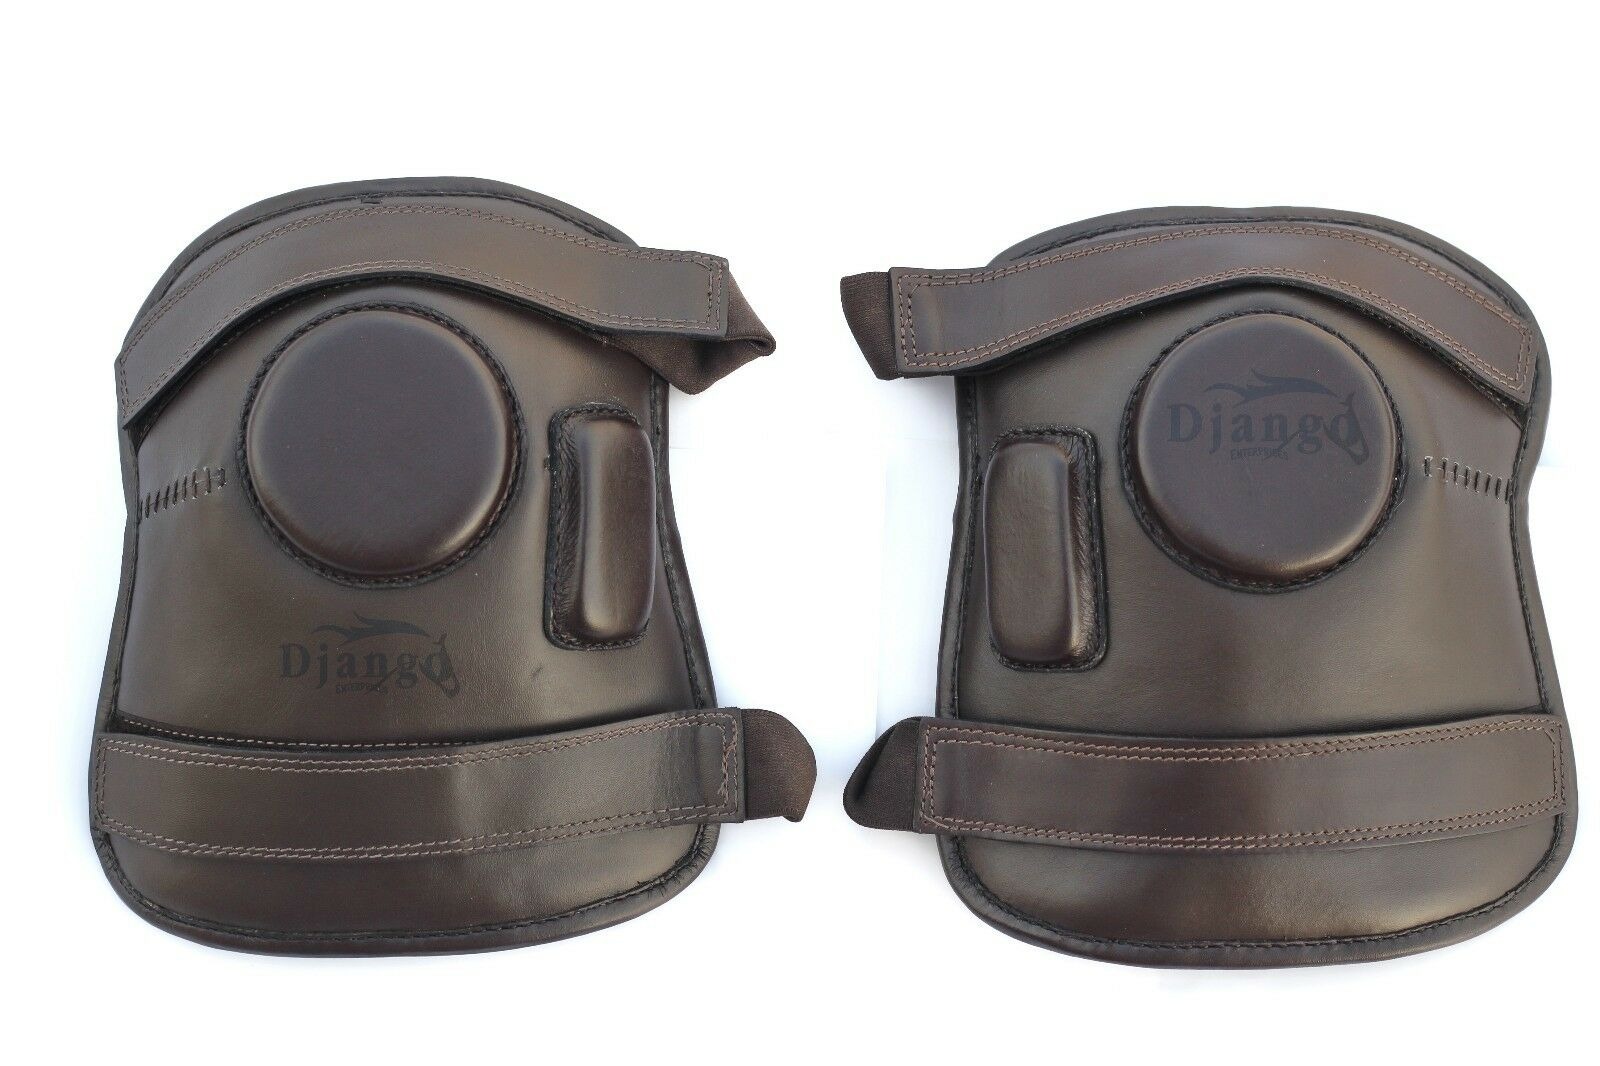 2  Strap Polo & Ridding Knee Guards made of Leather for Ladies & Kids 8 to 16 YR  save up to 70%